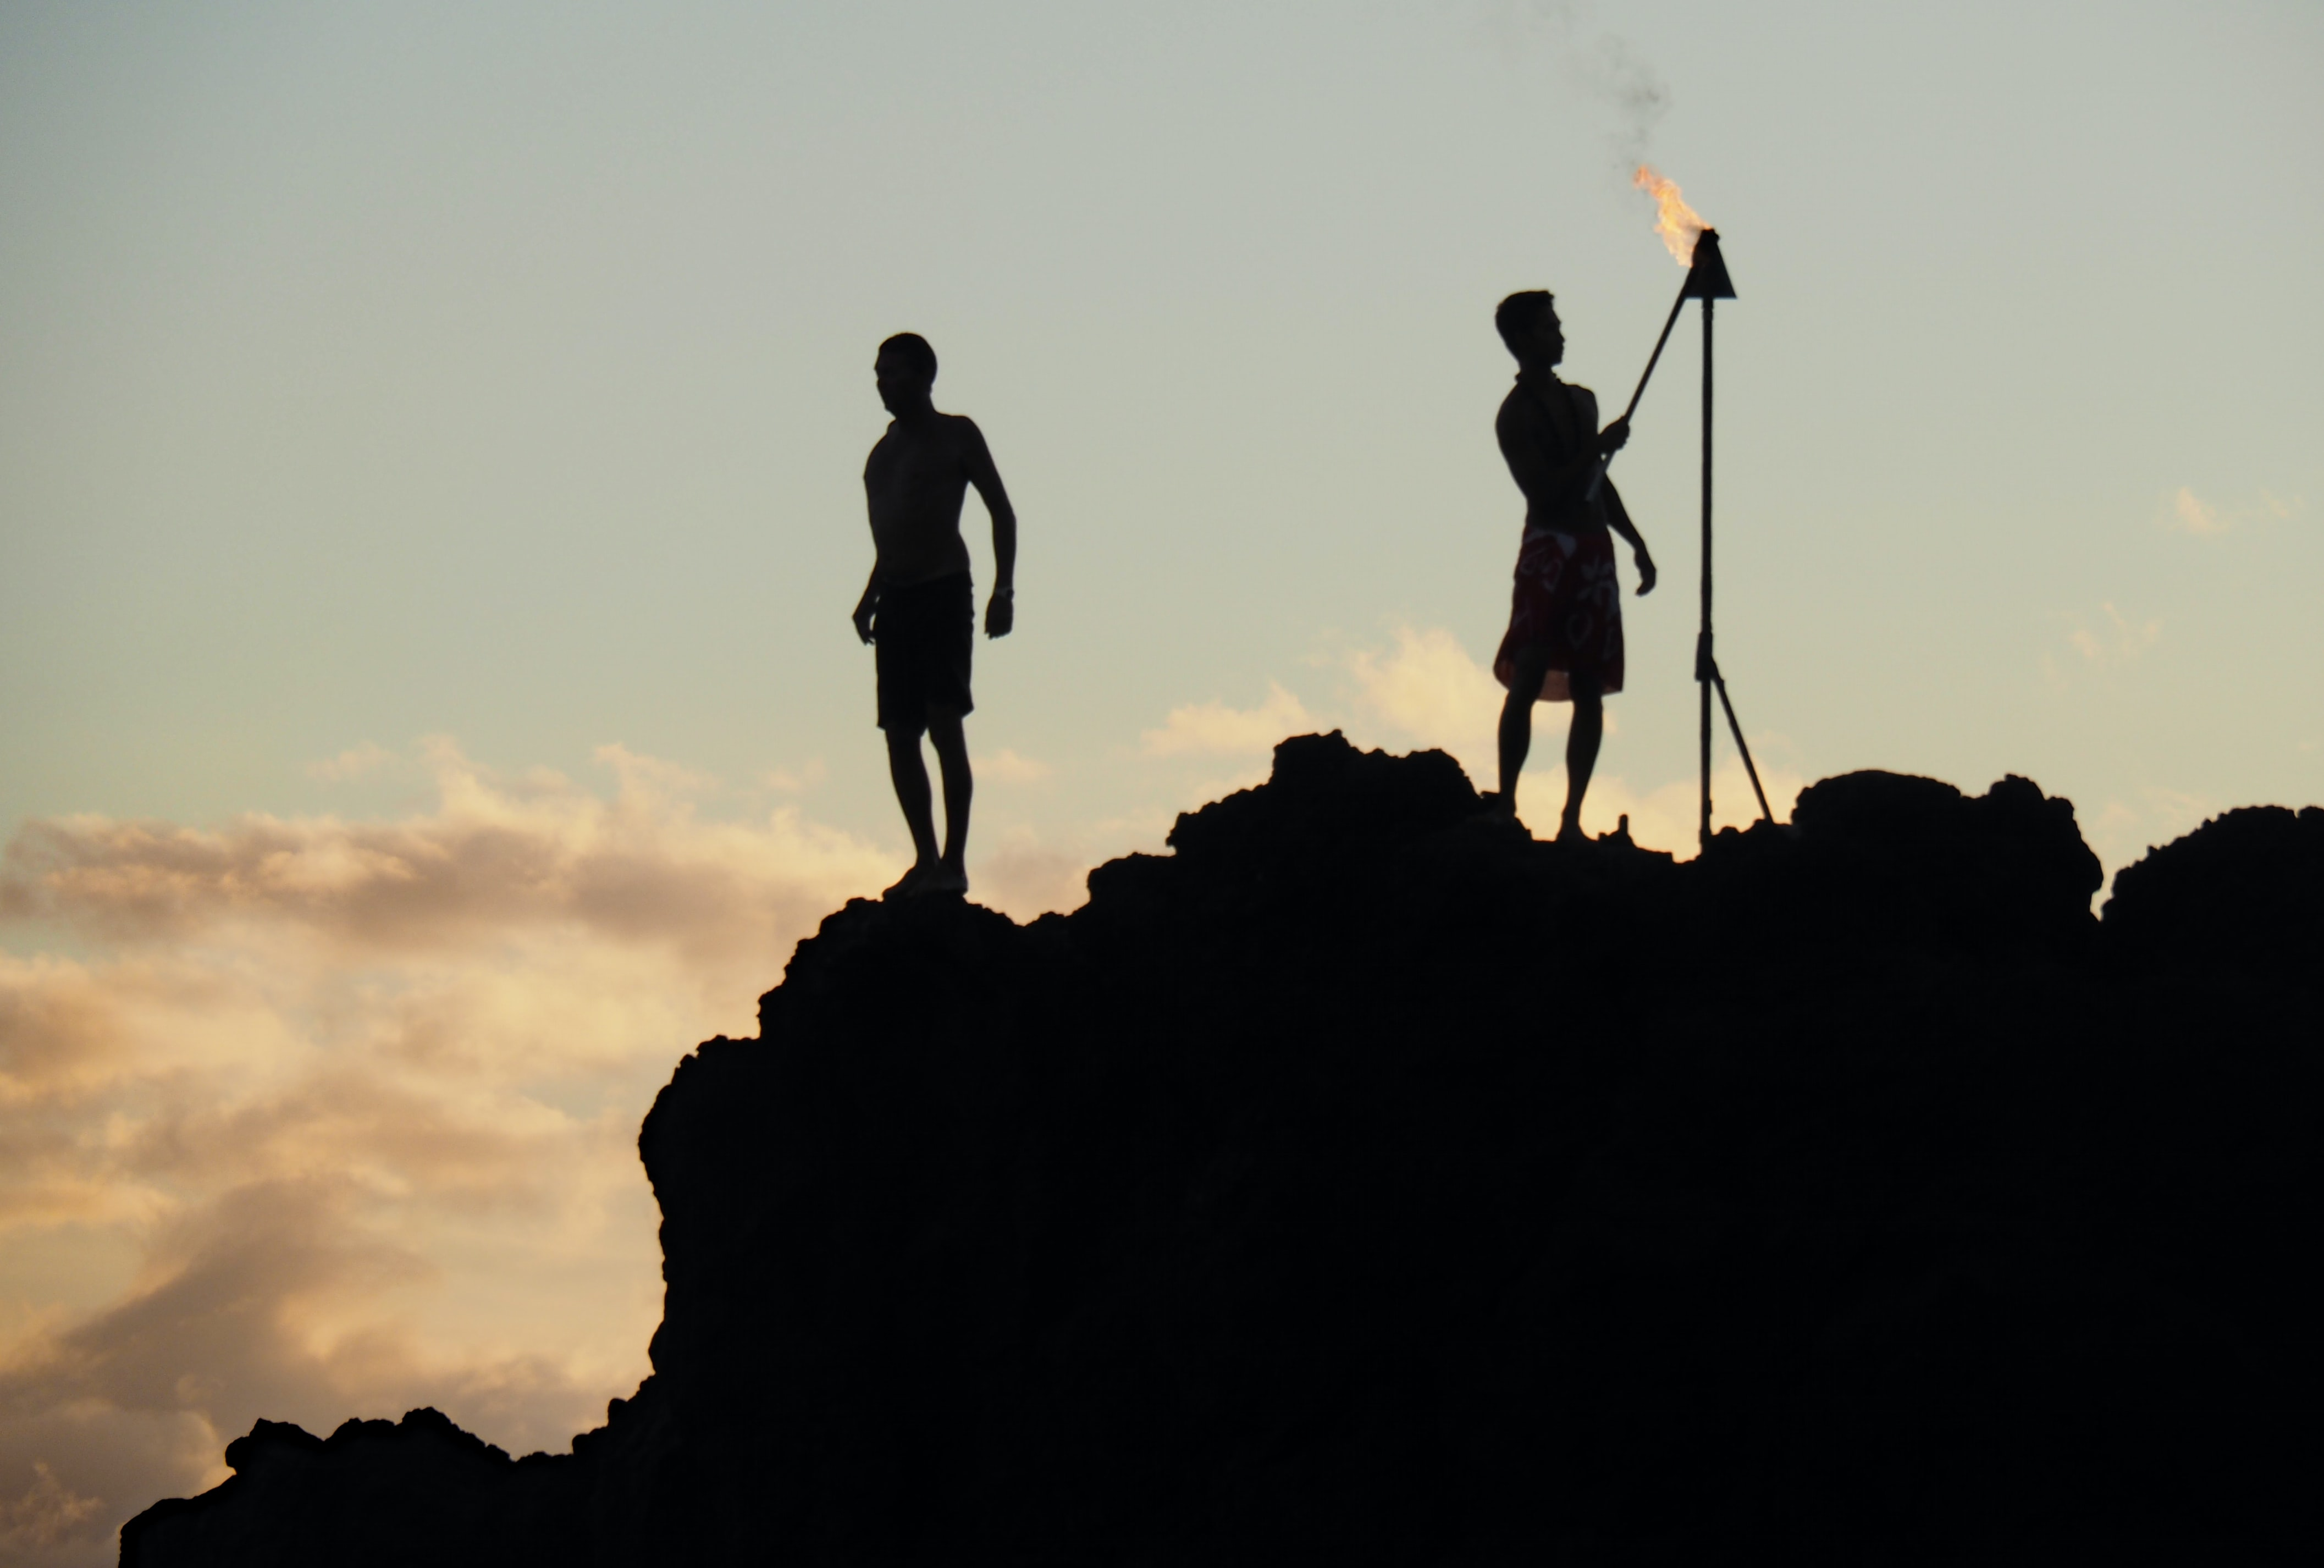 silhouette photo of man holding fire stick near man standing at peak of mountain